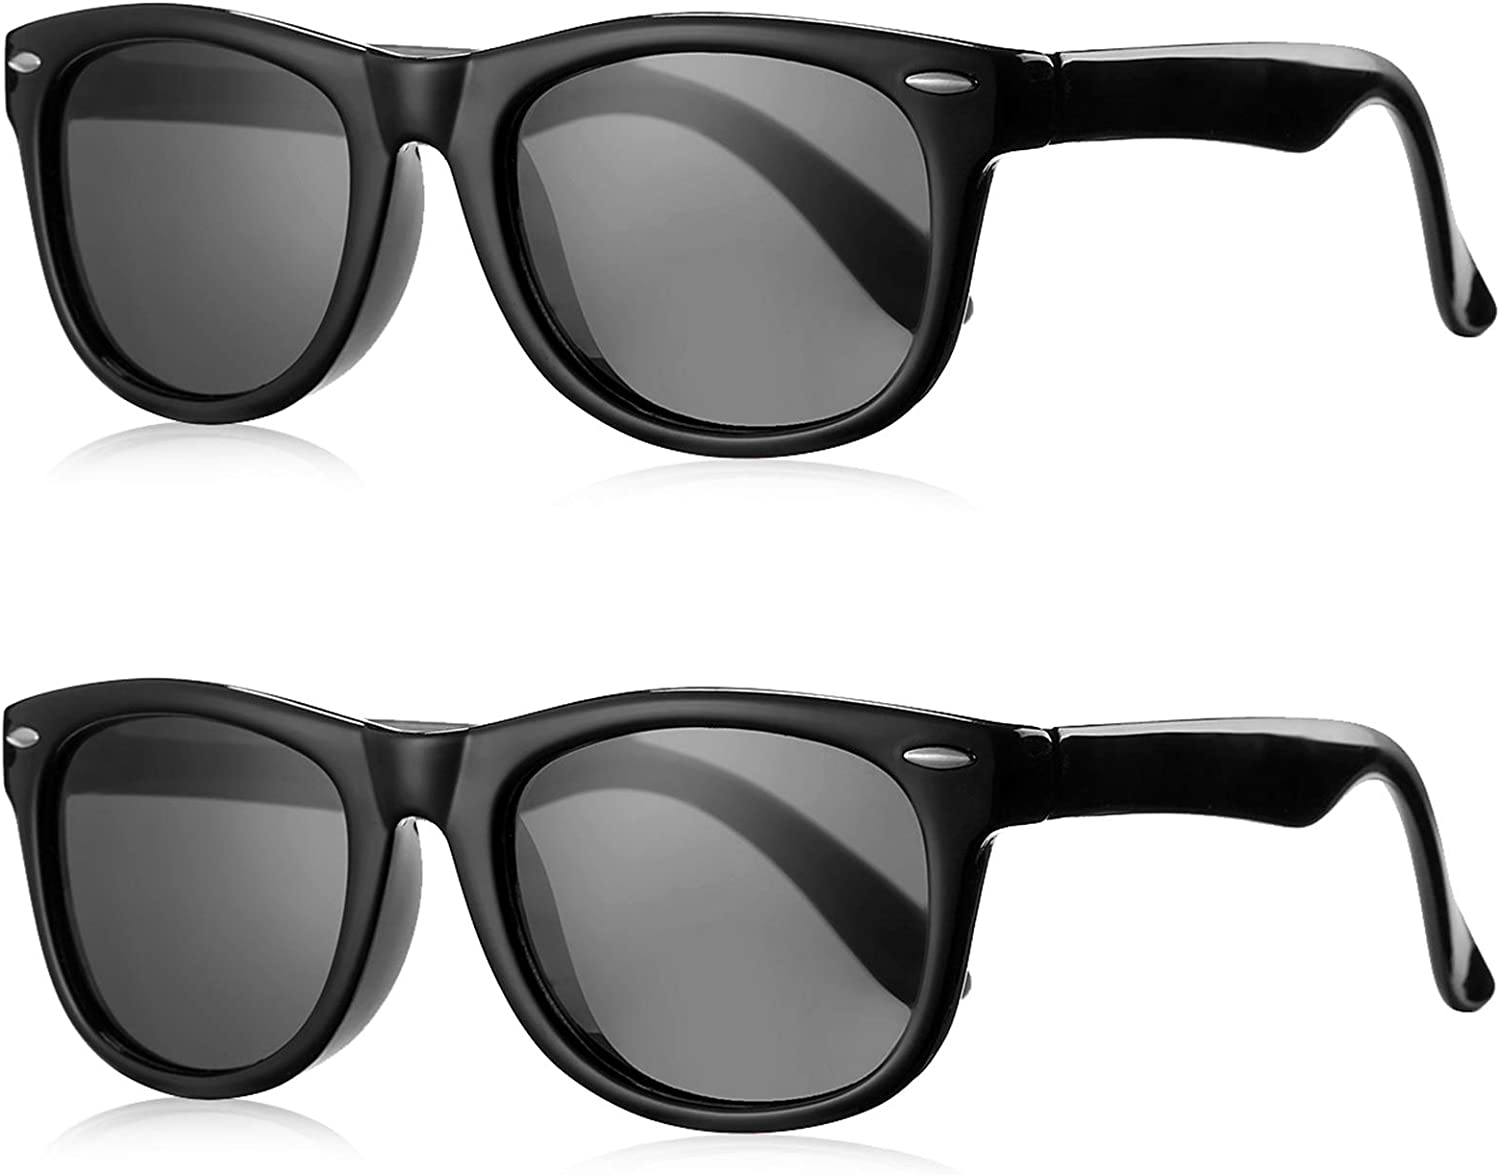 Max 54% OFF Outstanding SeeBand Kids Polarized Sunglasses TPEE Rubber Frame Flexible for